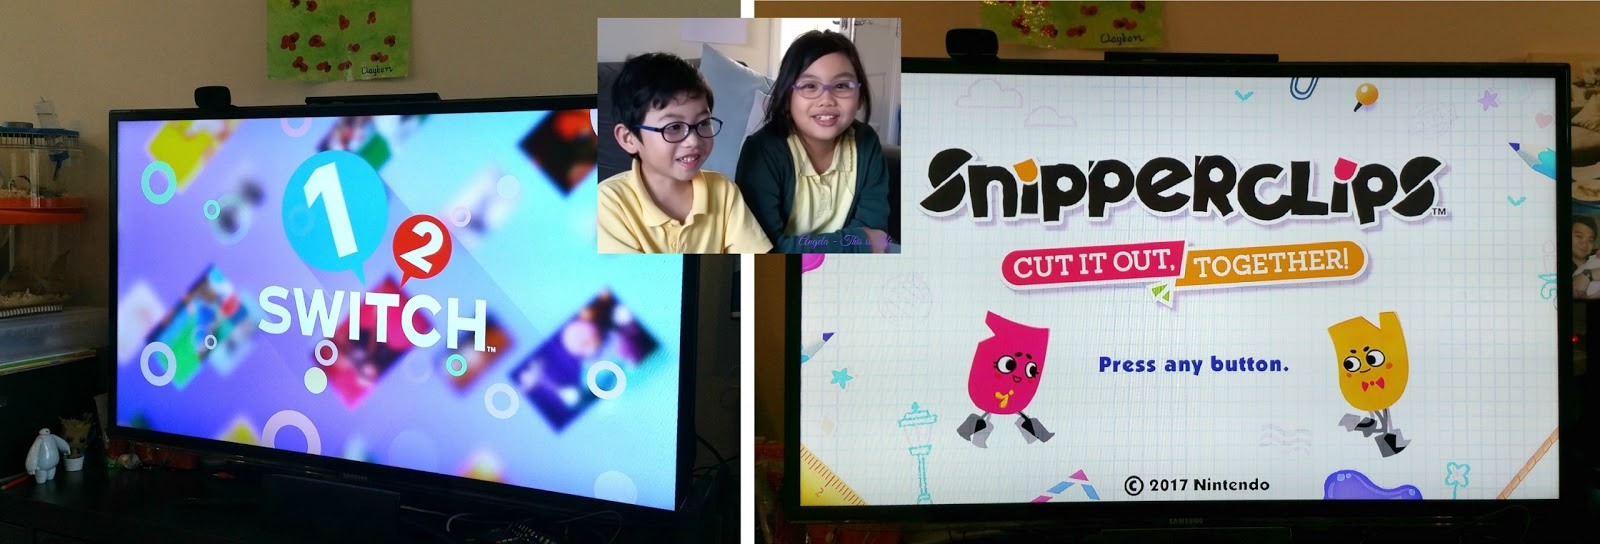 Nintendo Switch games, 1-2-Switch, Snipperclips Cut it out together